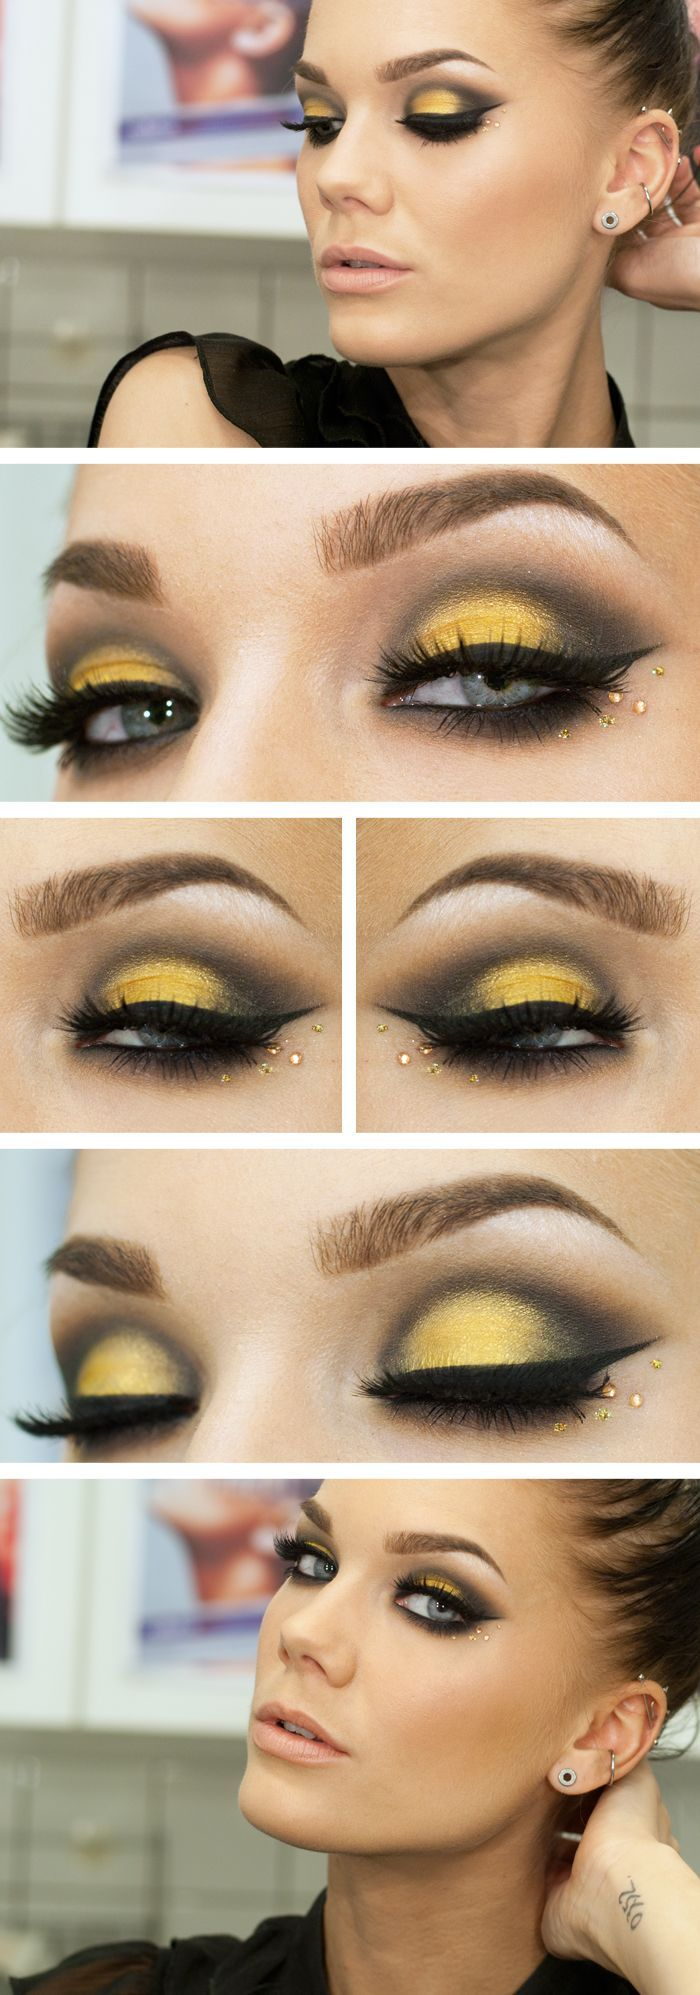 11 Everyday Makeup Tutorials and Ideas for Women – Pretty Designs